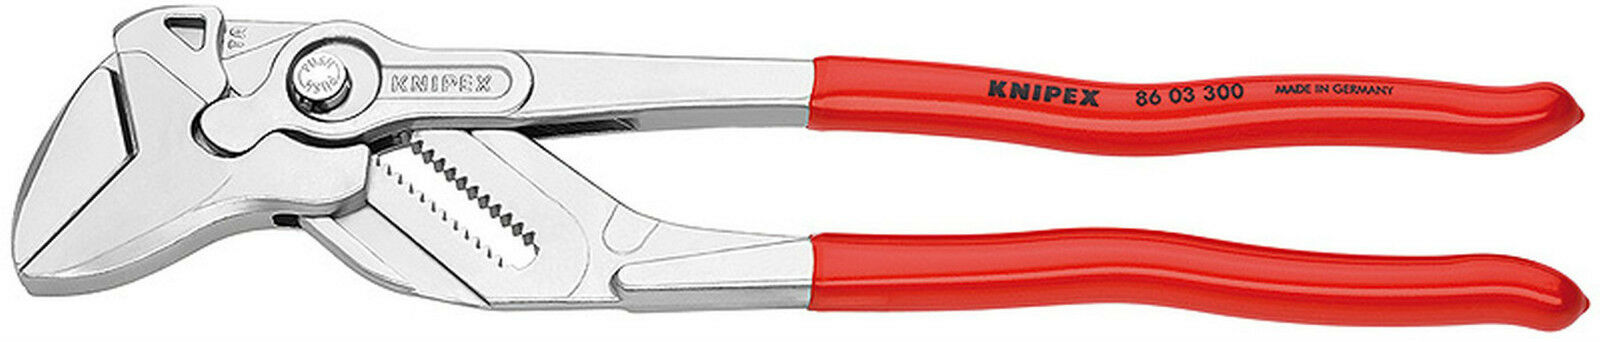 Knipex 8603-12 Plier Wrench 86 03 300 - 60mm, 2-3 8 In